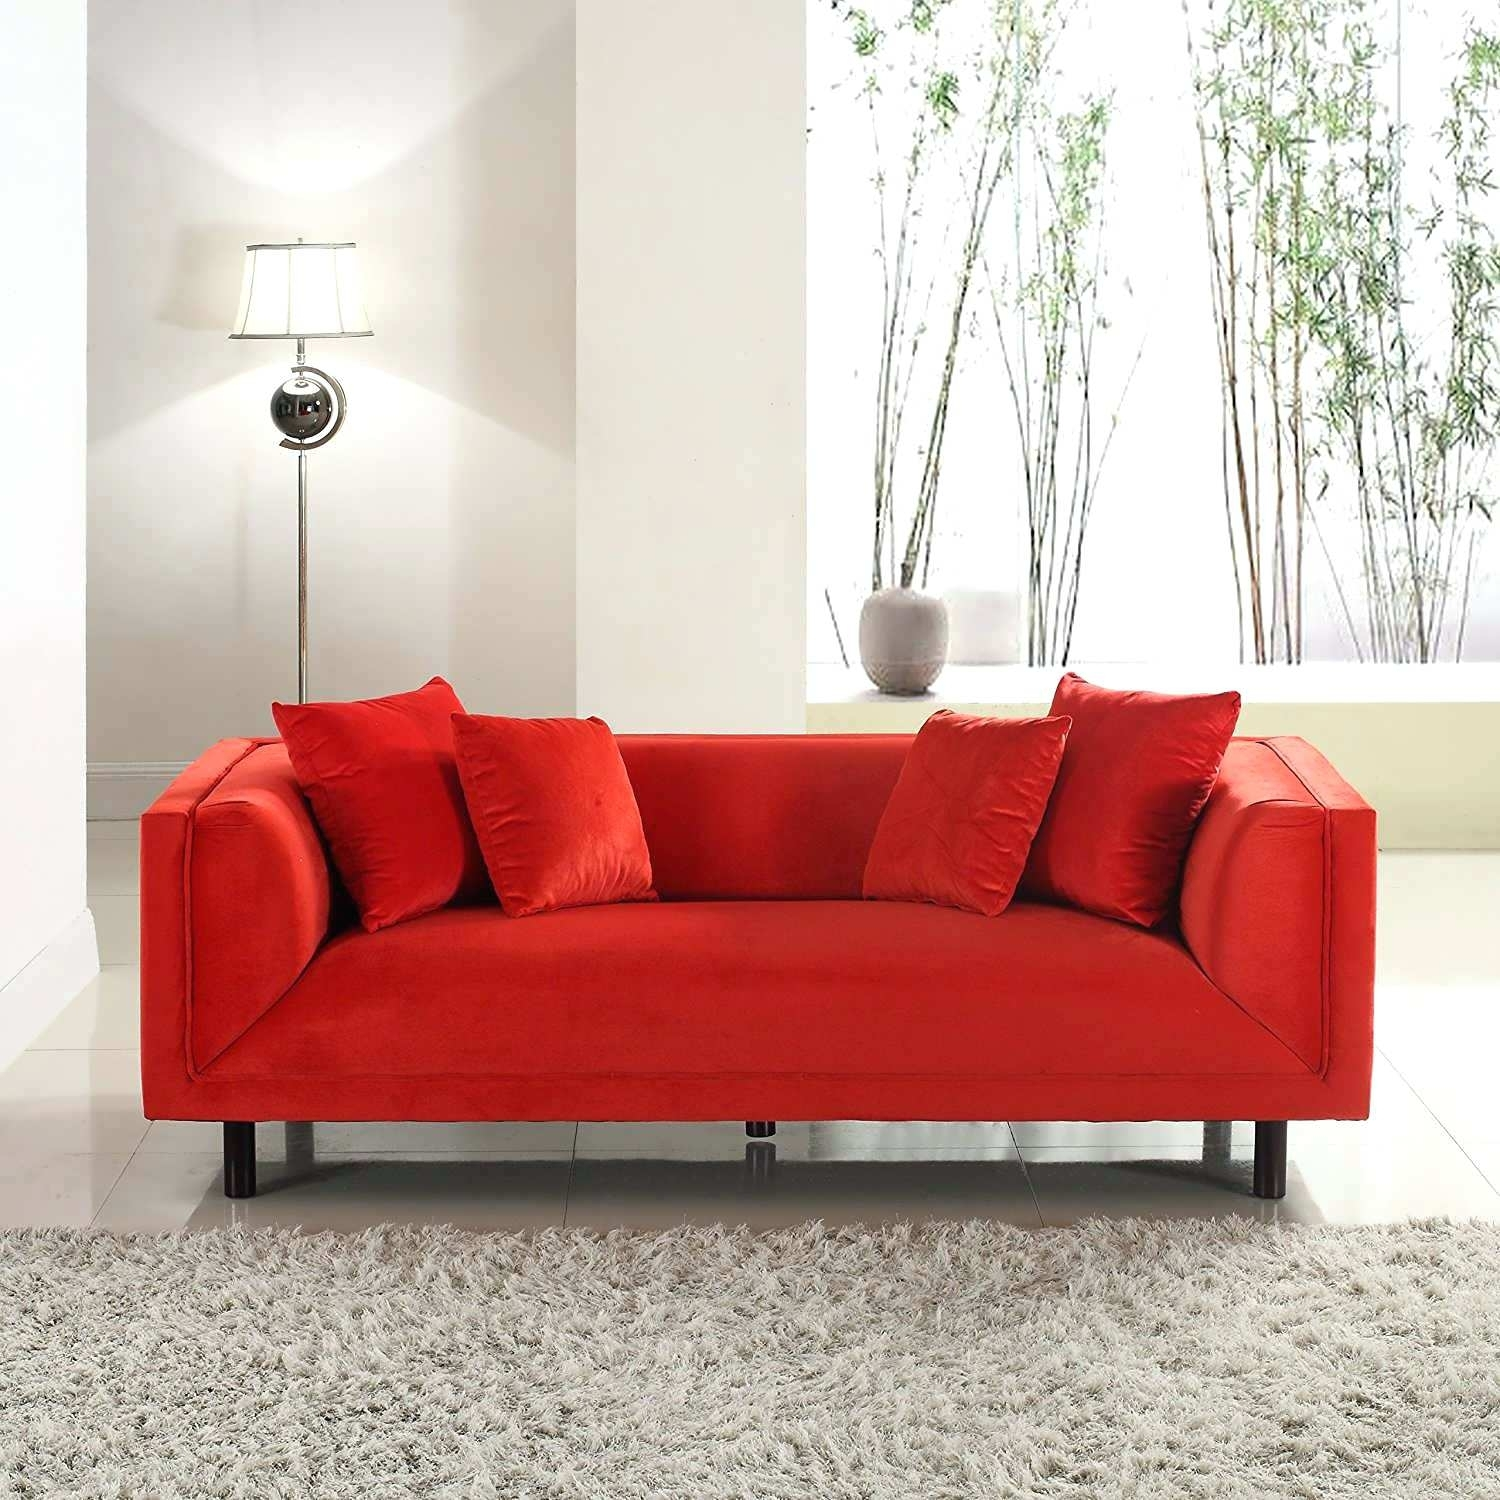 Red Sectional Sofas Faux Leather Sofa Cheap Sectionals Value City for Red Faux Leather Sectionals (Image 9 of 15)